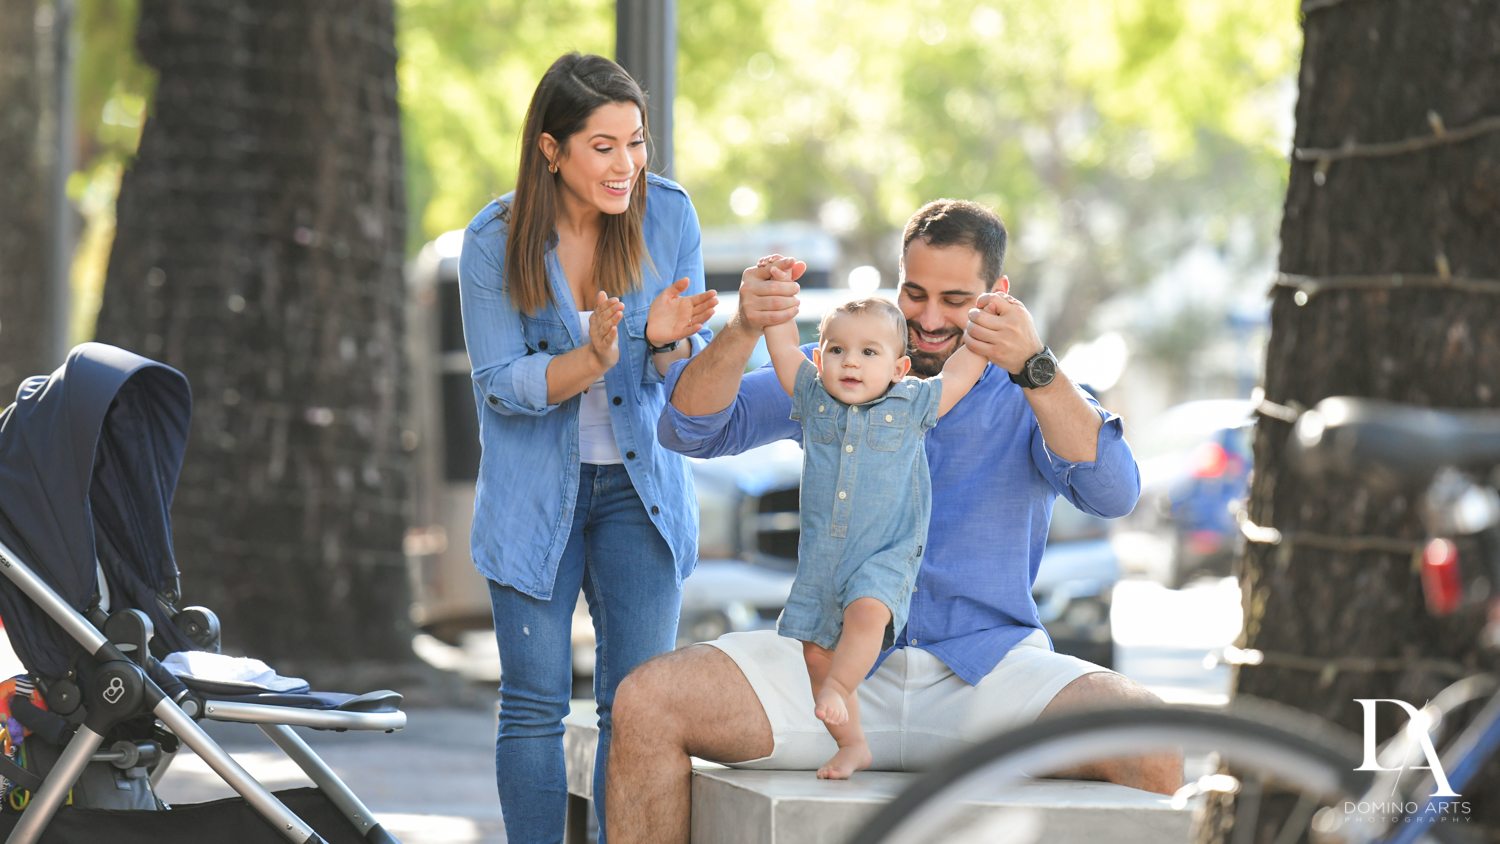 fun baby portraits at Urban baby Photo Session in Coral Gables by Domino Arts Photography